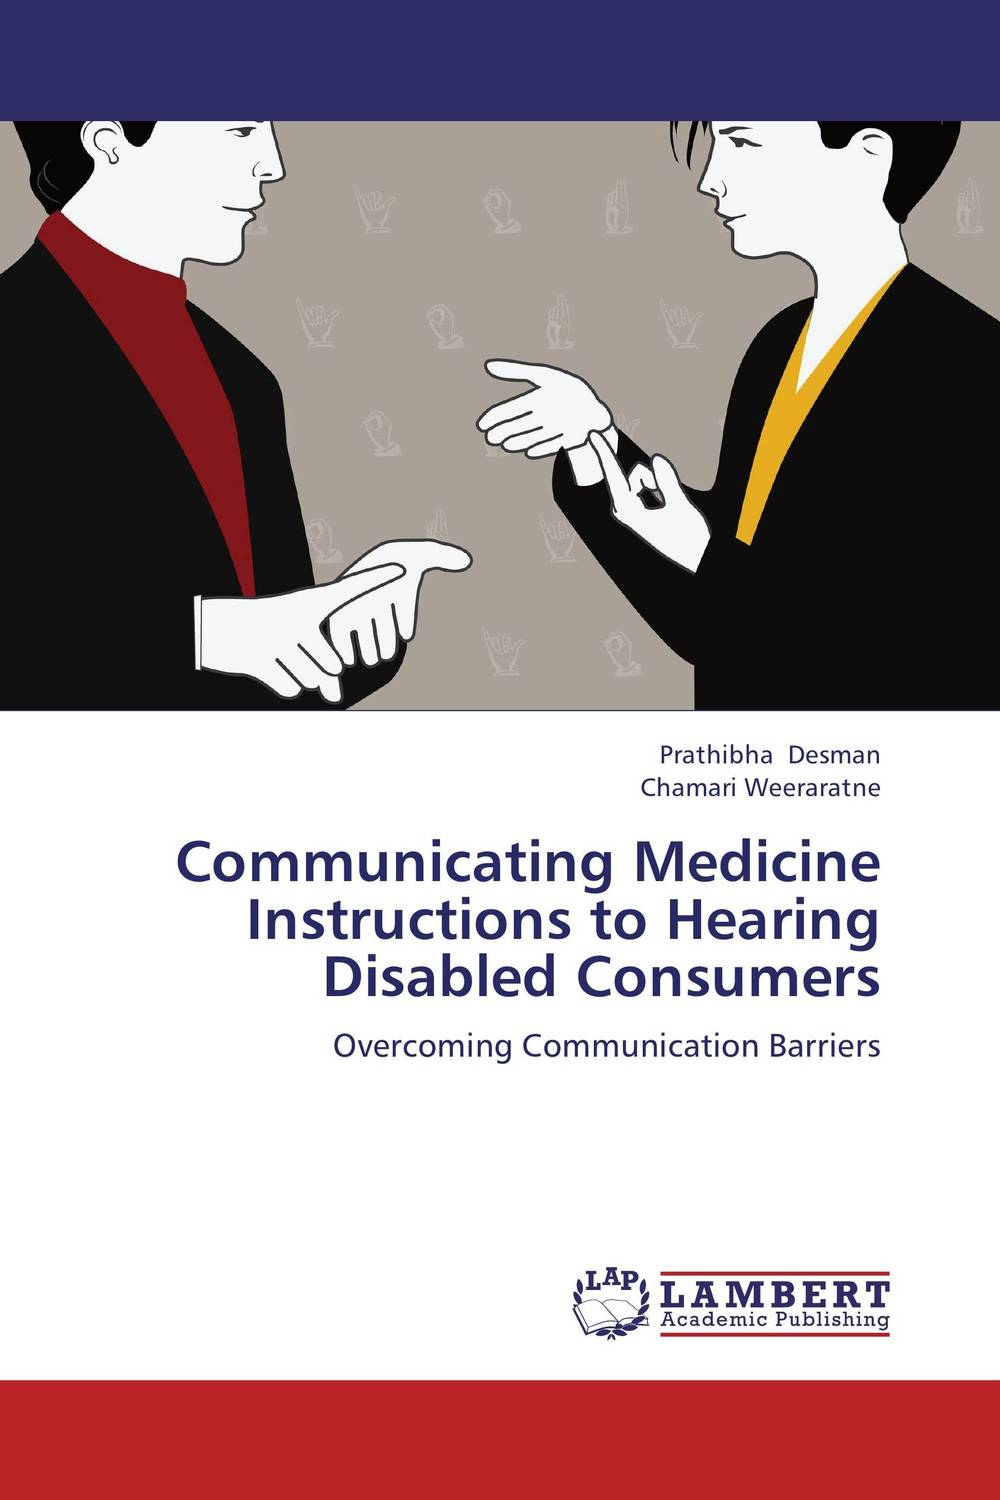 Communicating Medicine Instructions to Hearing Disabled Consumers